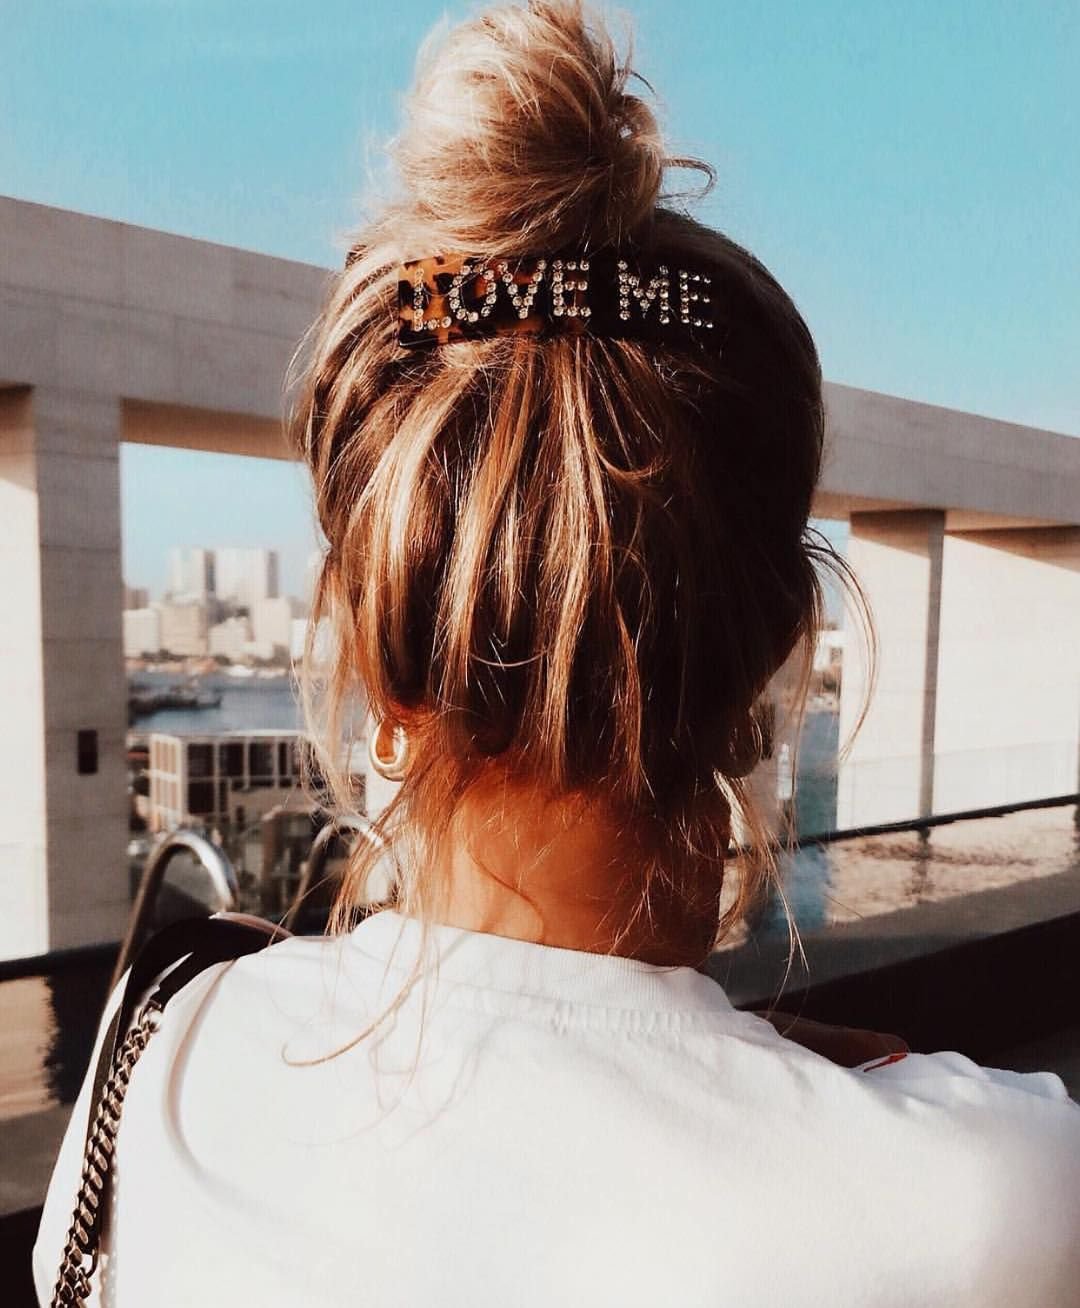 "Miss Mathiesen on Instagram: ""Aim for the weekend ❤️ Love Me . . @heddaskoug #gevirxmissmathiesen #loveme #hairclips"""